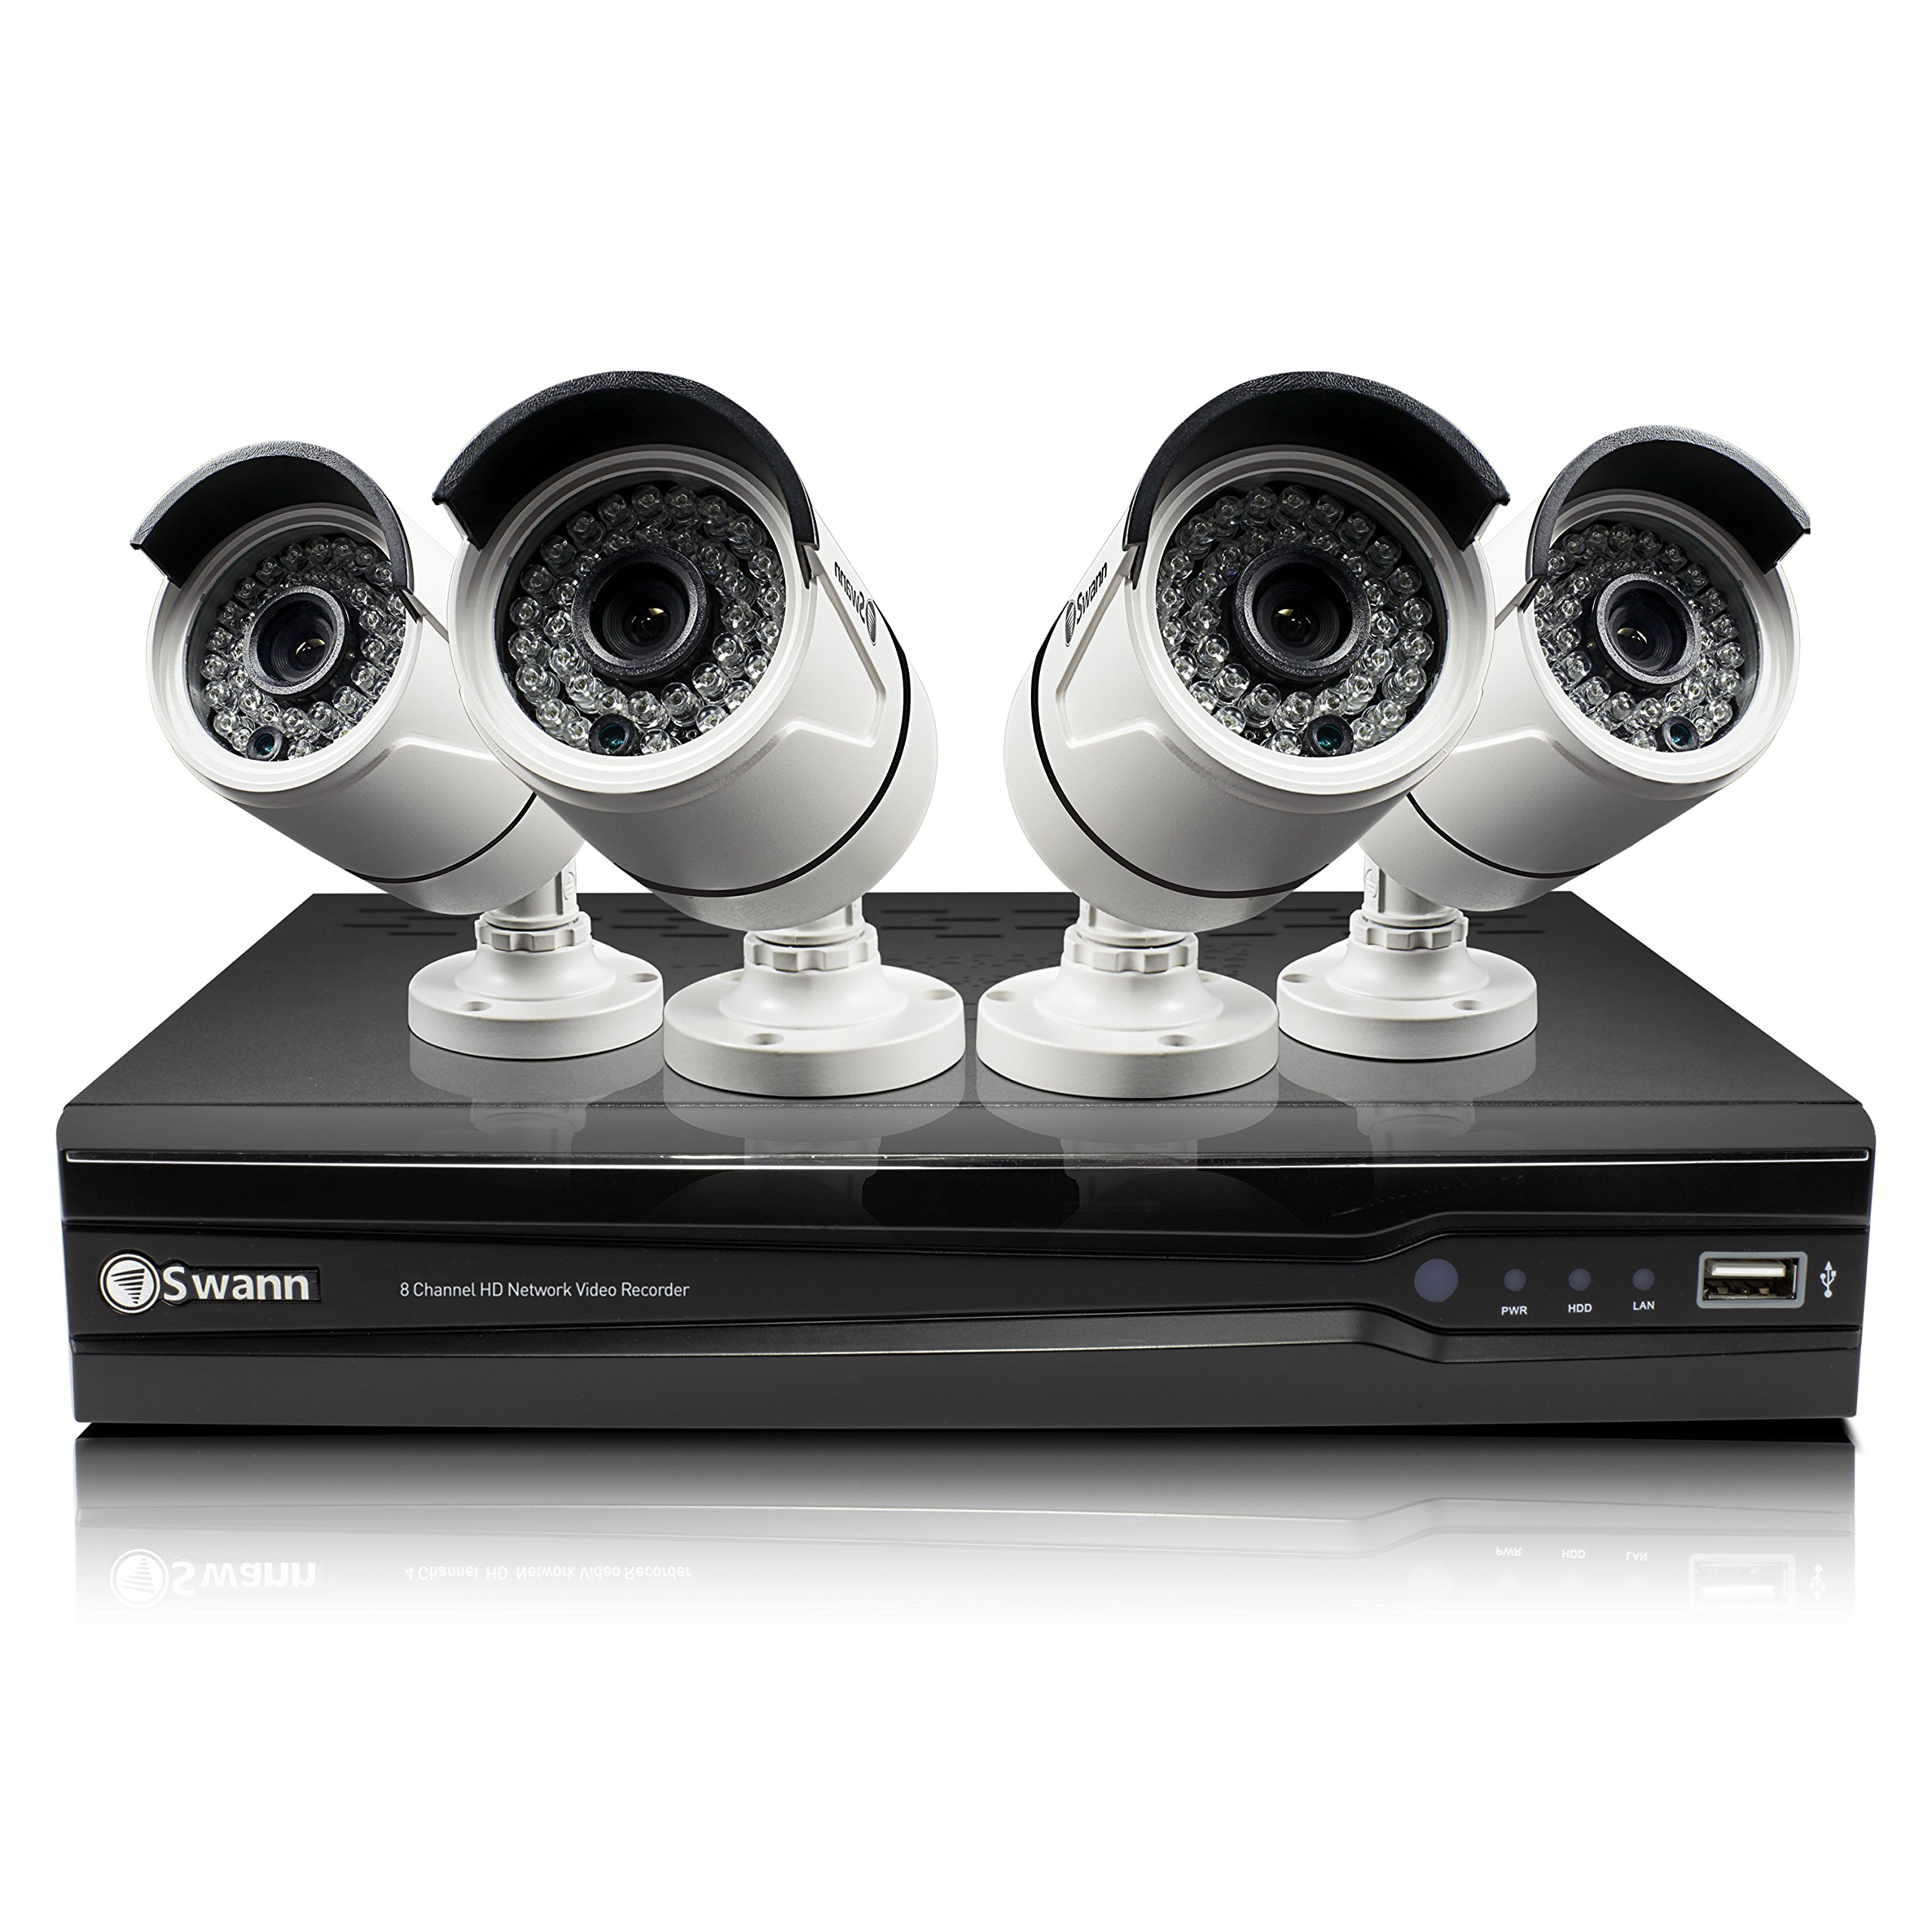 Swann 8 Channel 3MP HD IP NVR Security System with 4 3MP Cameras, 2TB HDD, and 100' Night Vision (SWNVK-873004)